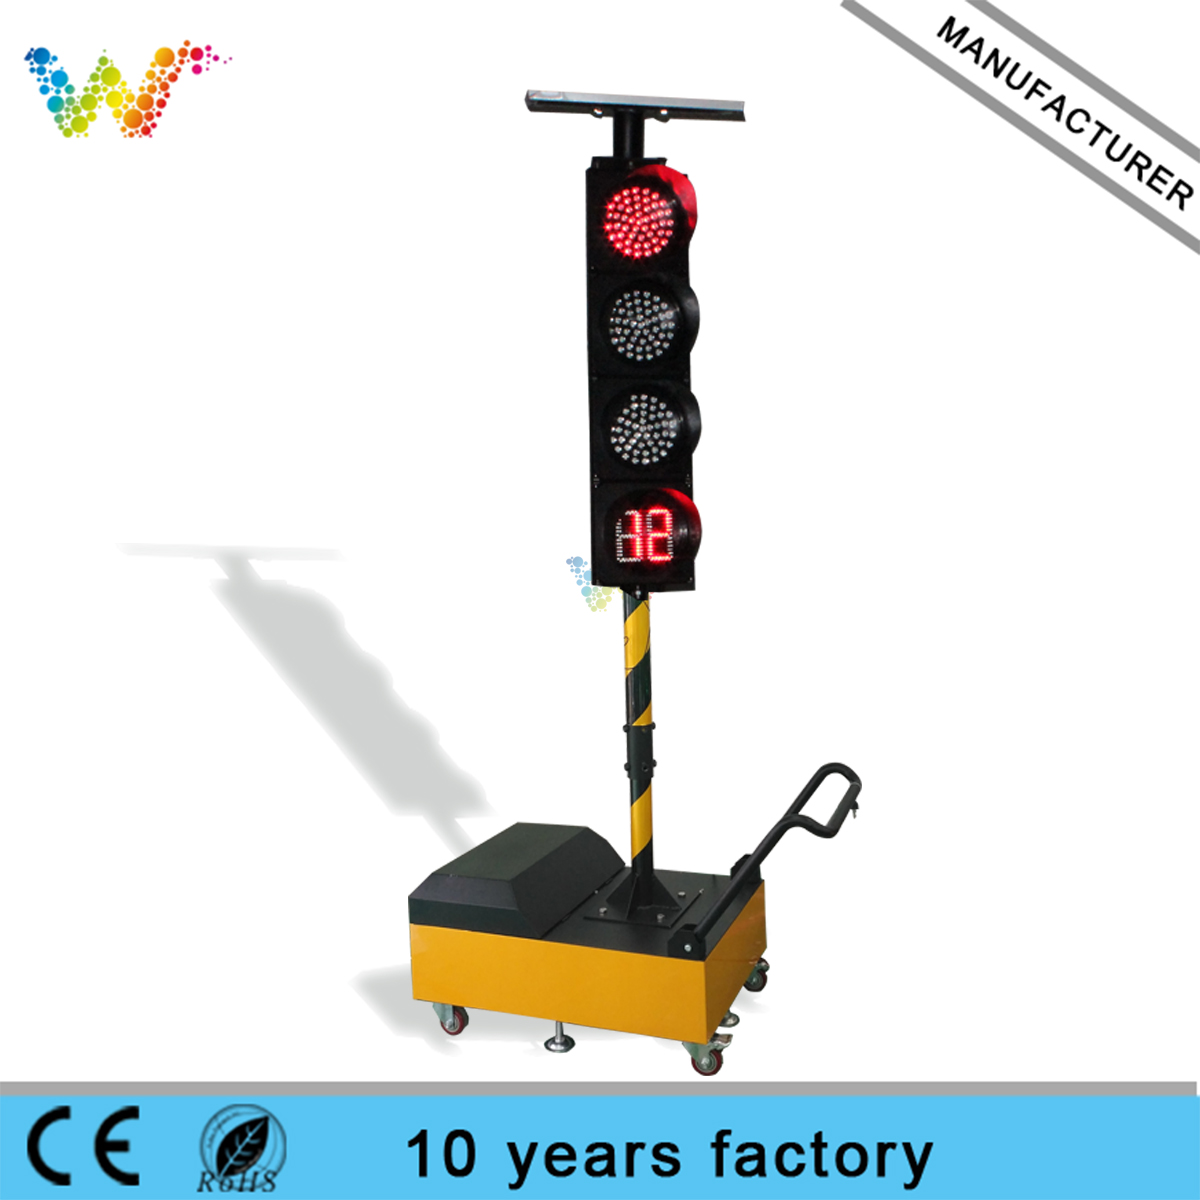 Trolley Remote Control 200mm LED Solar Portable Traffic Light